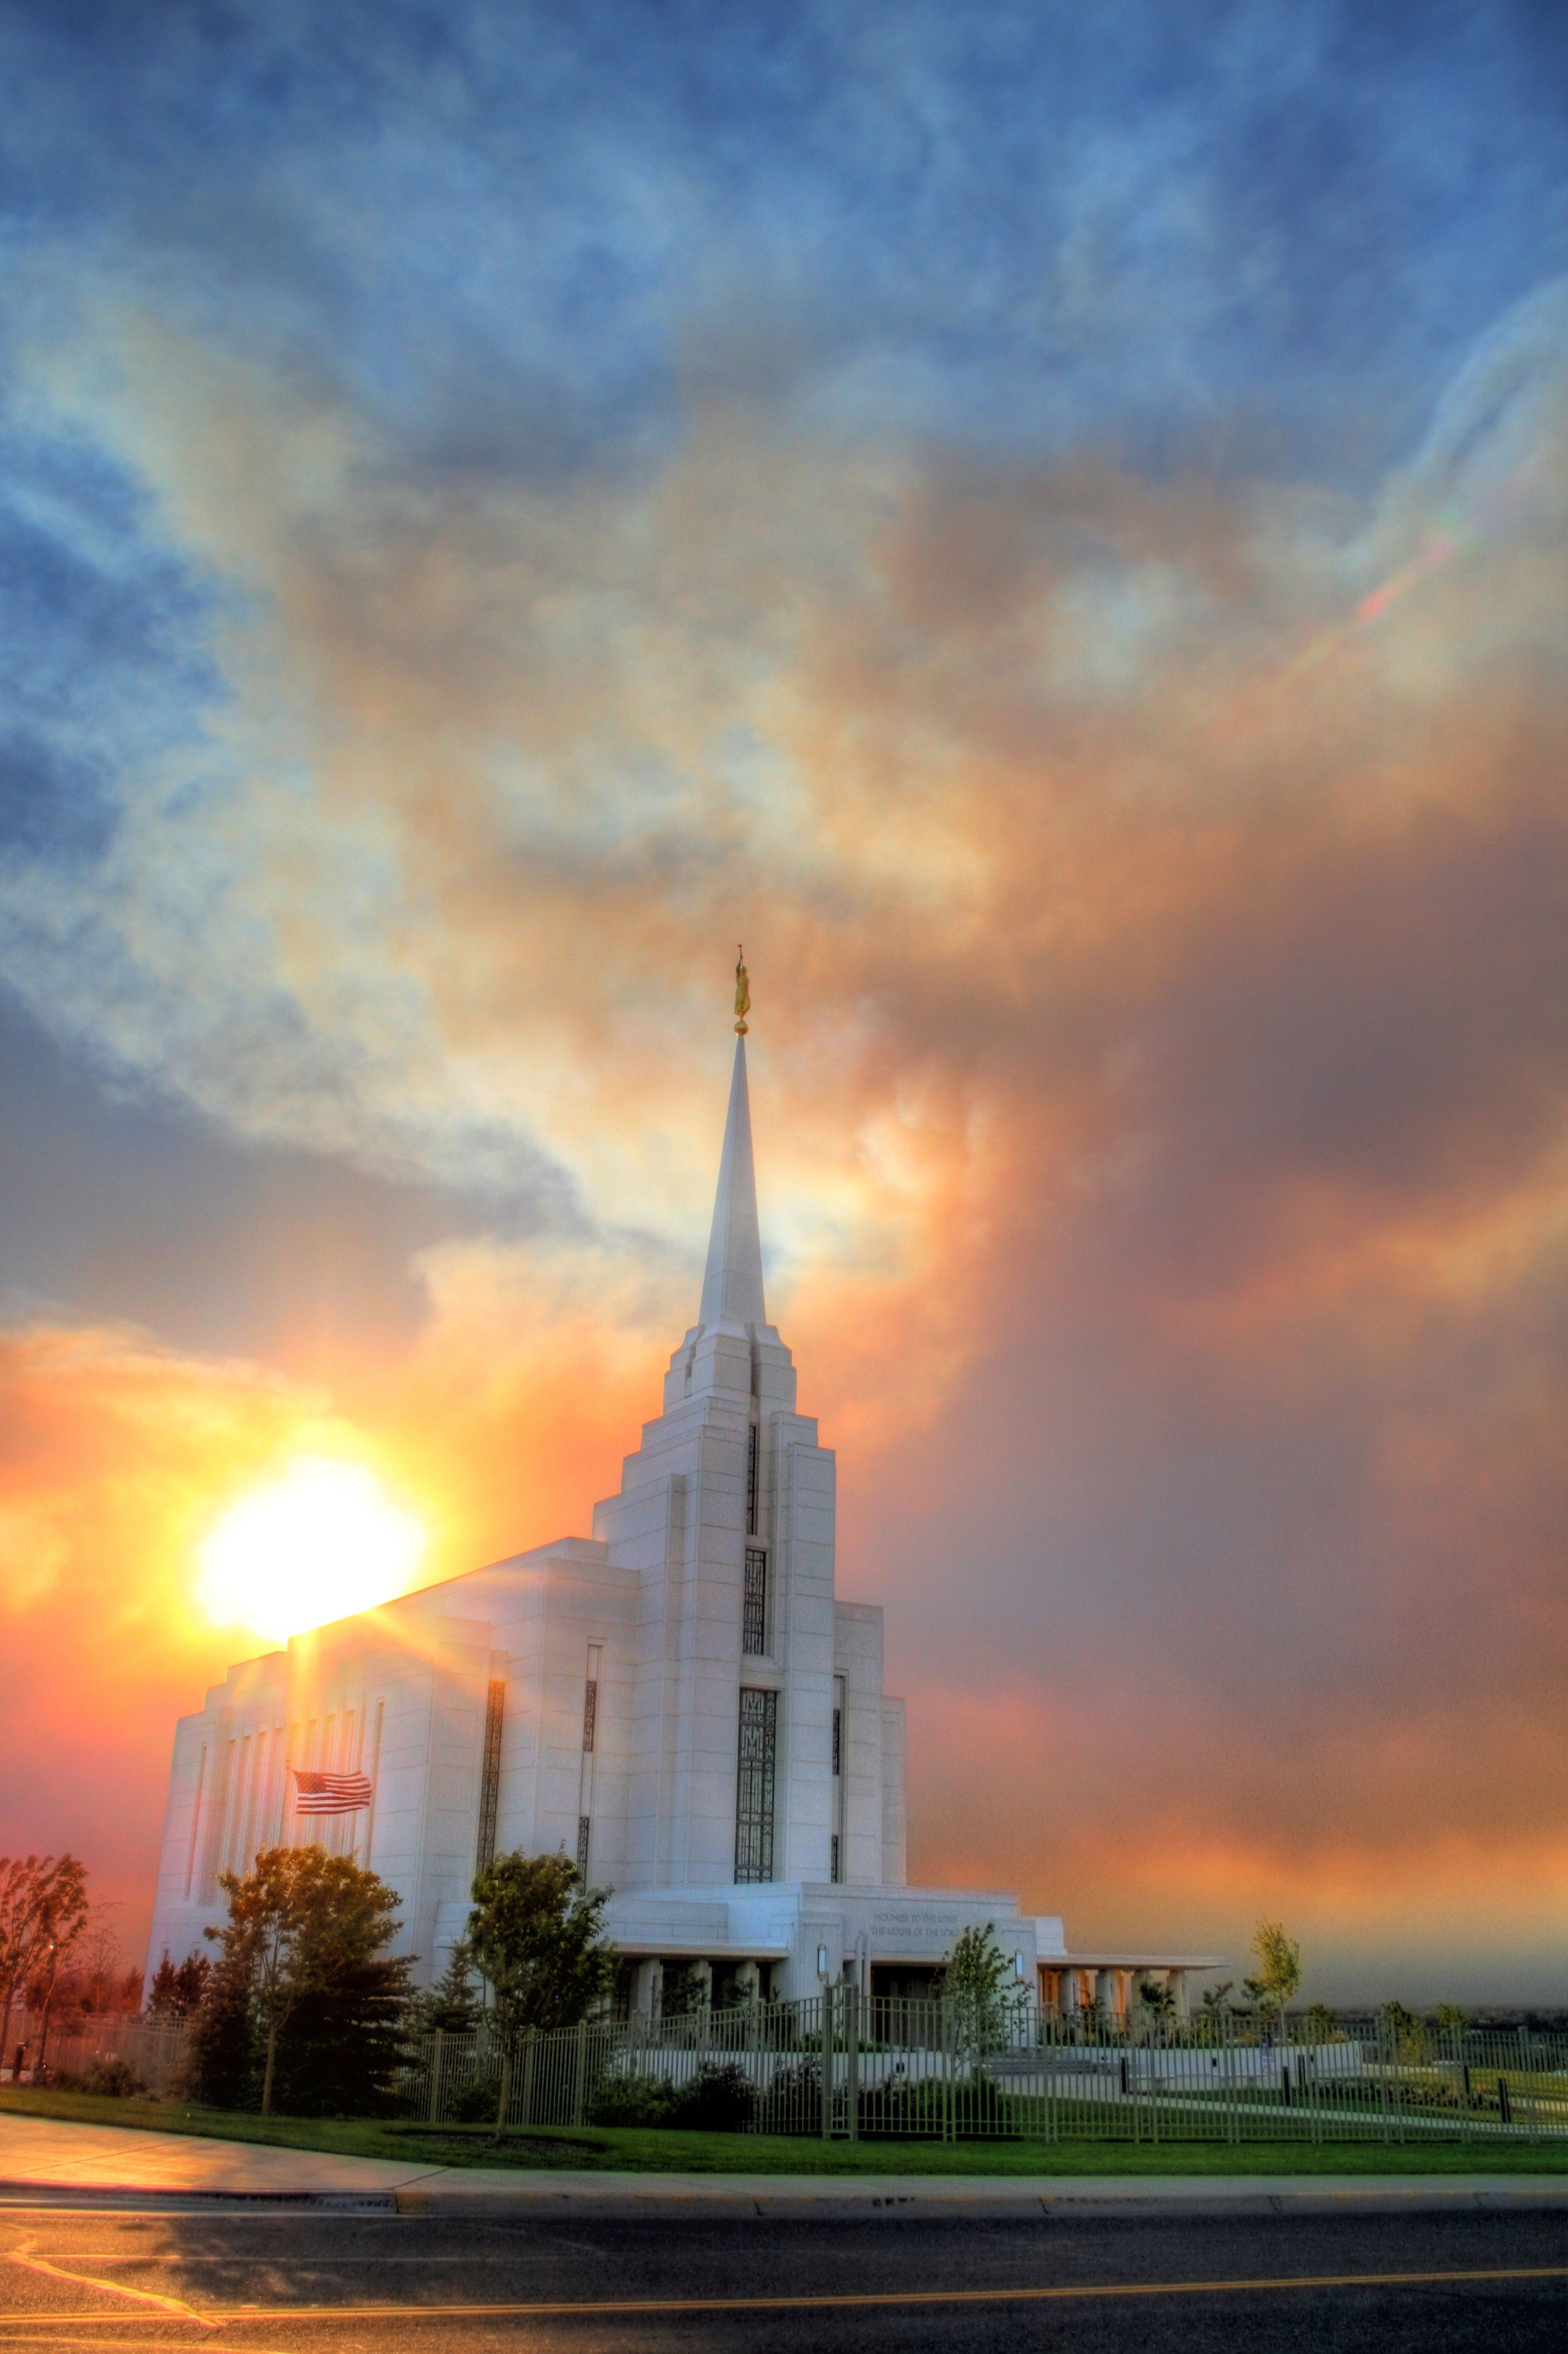 The Rexburg Idaho Temple at sunset, including clouds and scenery.